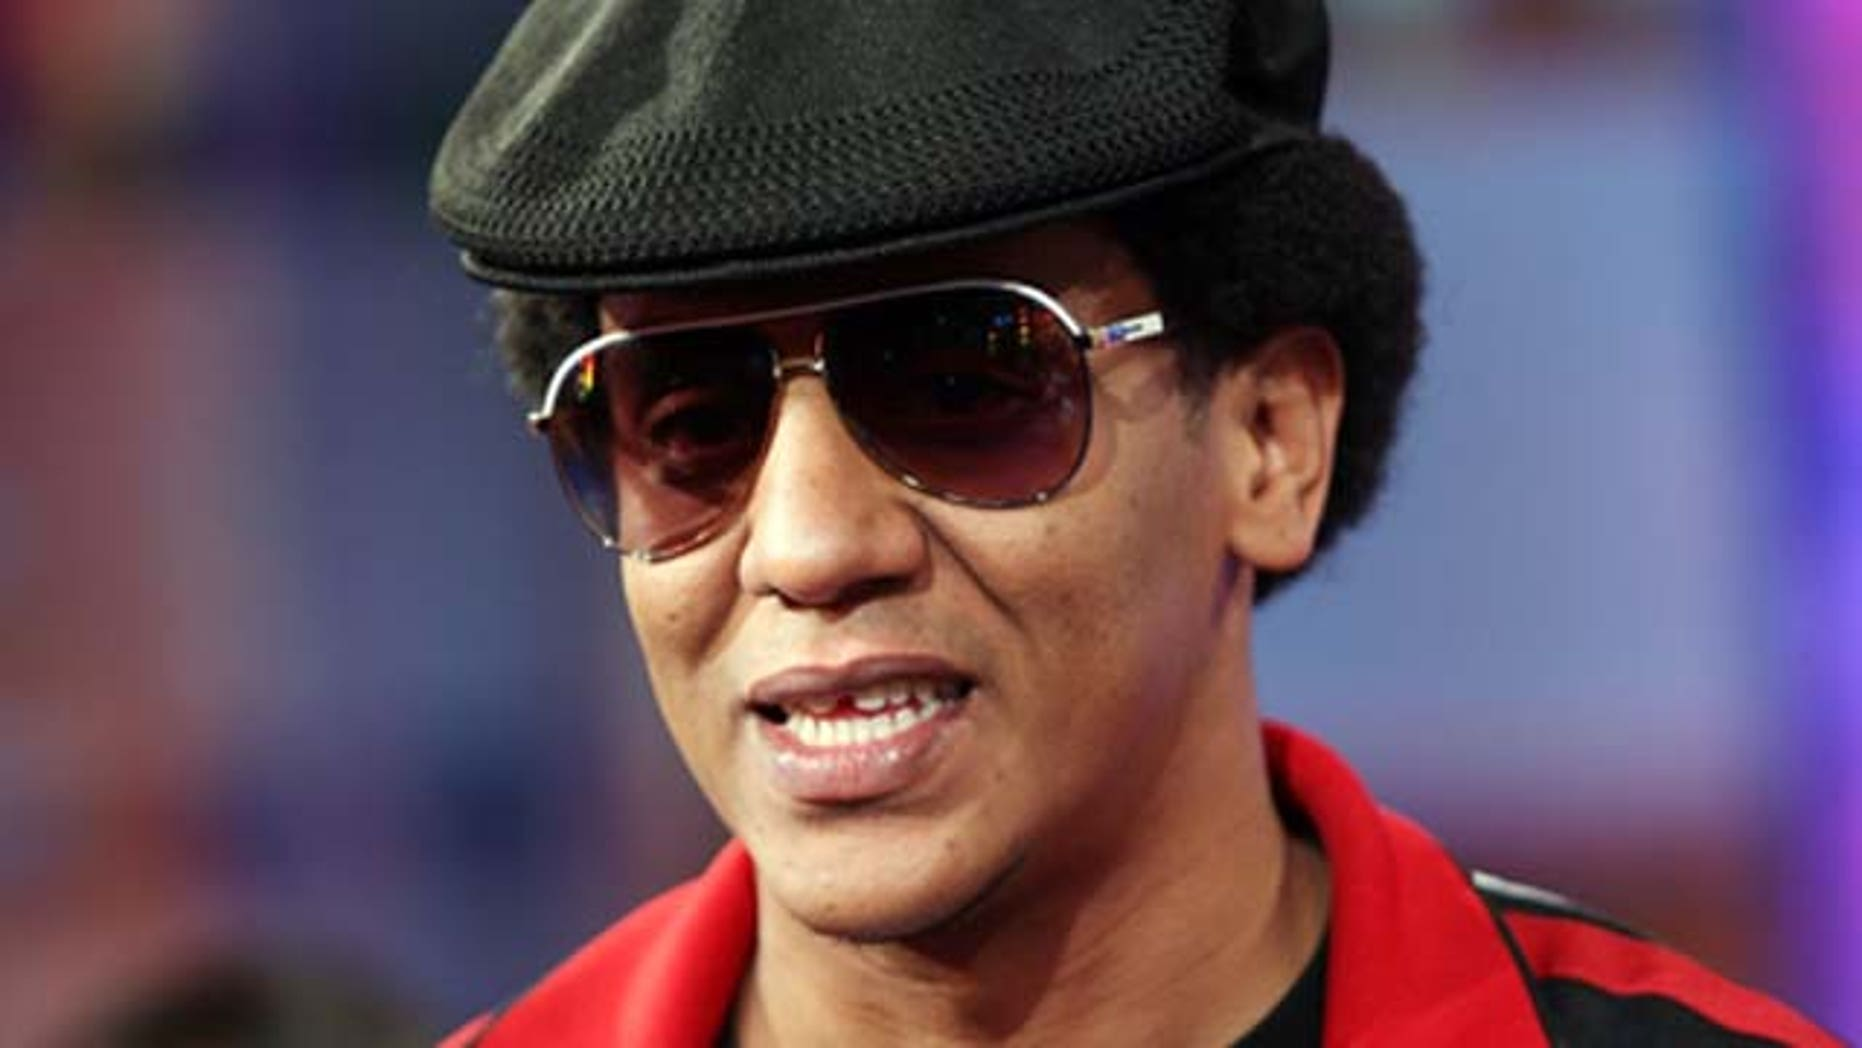 Oct. 2, 2007: Singer Tego Calderón appears onstage during MTV's TRL at the MTV Times Square Studios in New York City.